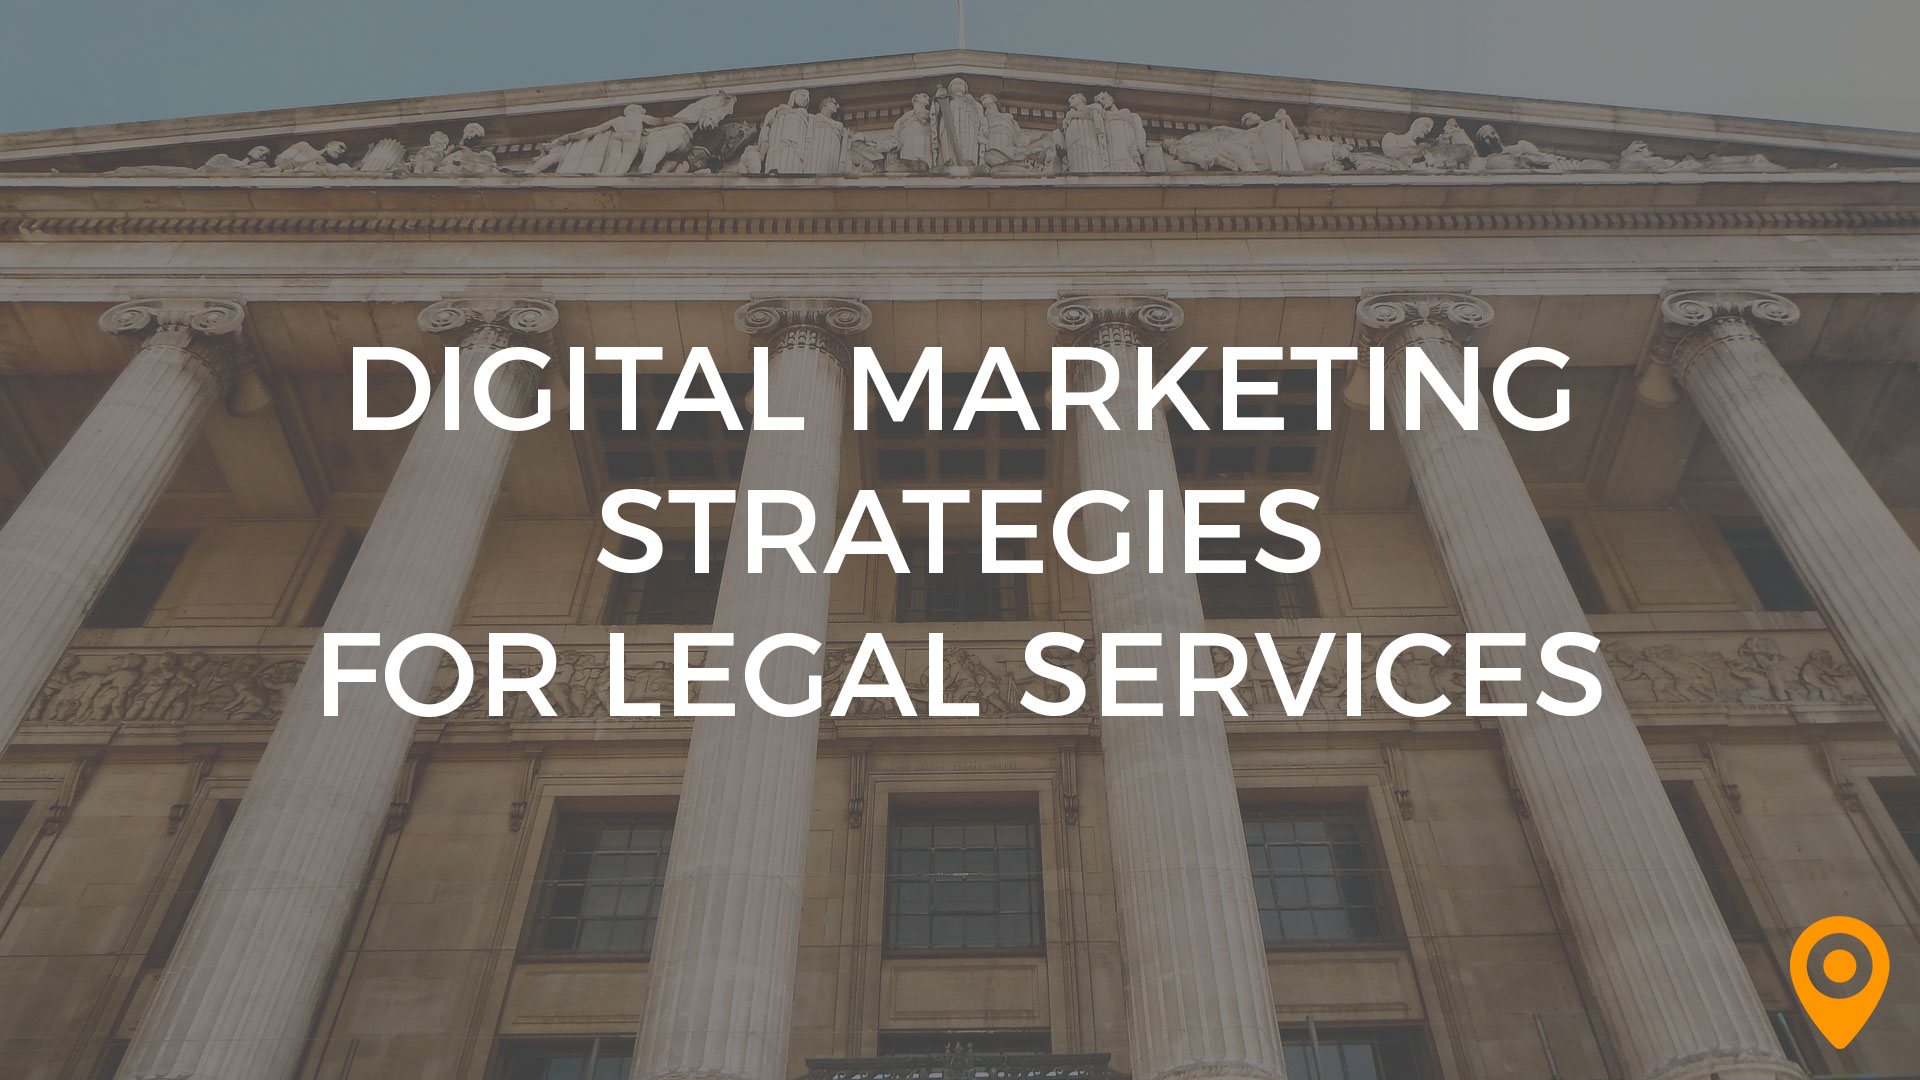 Digital Marketing for Legal Services